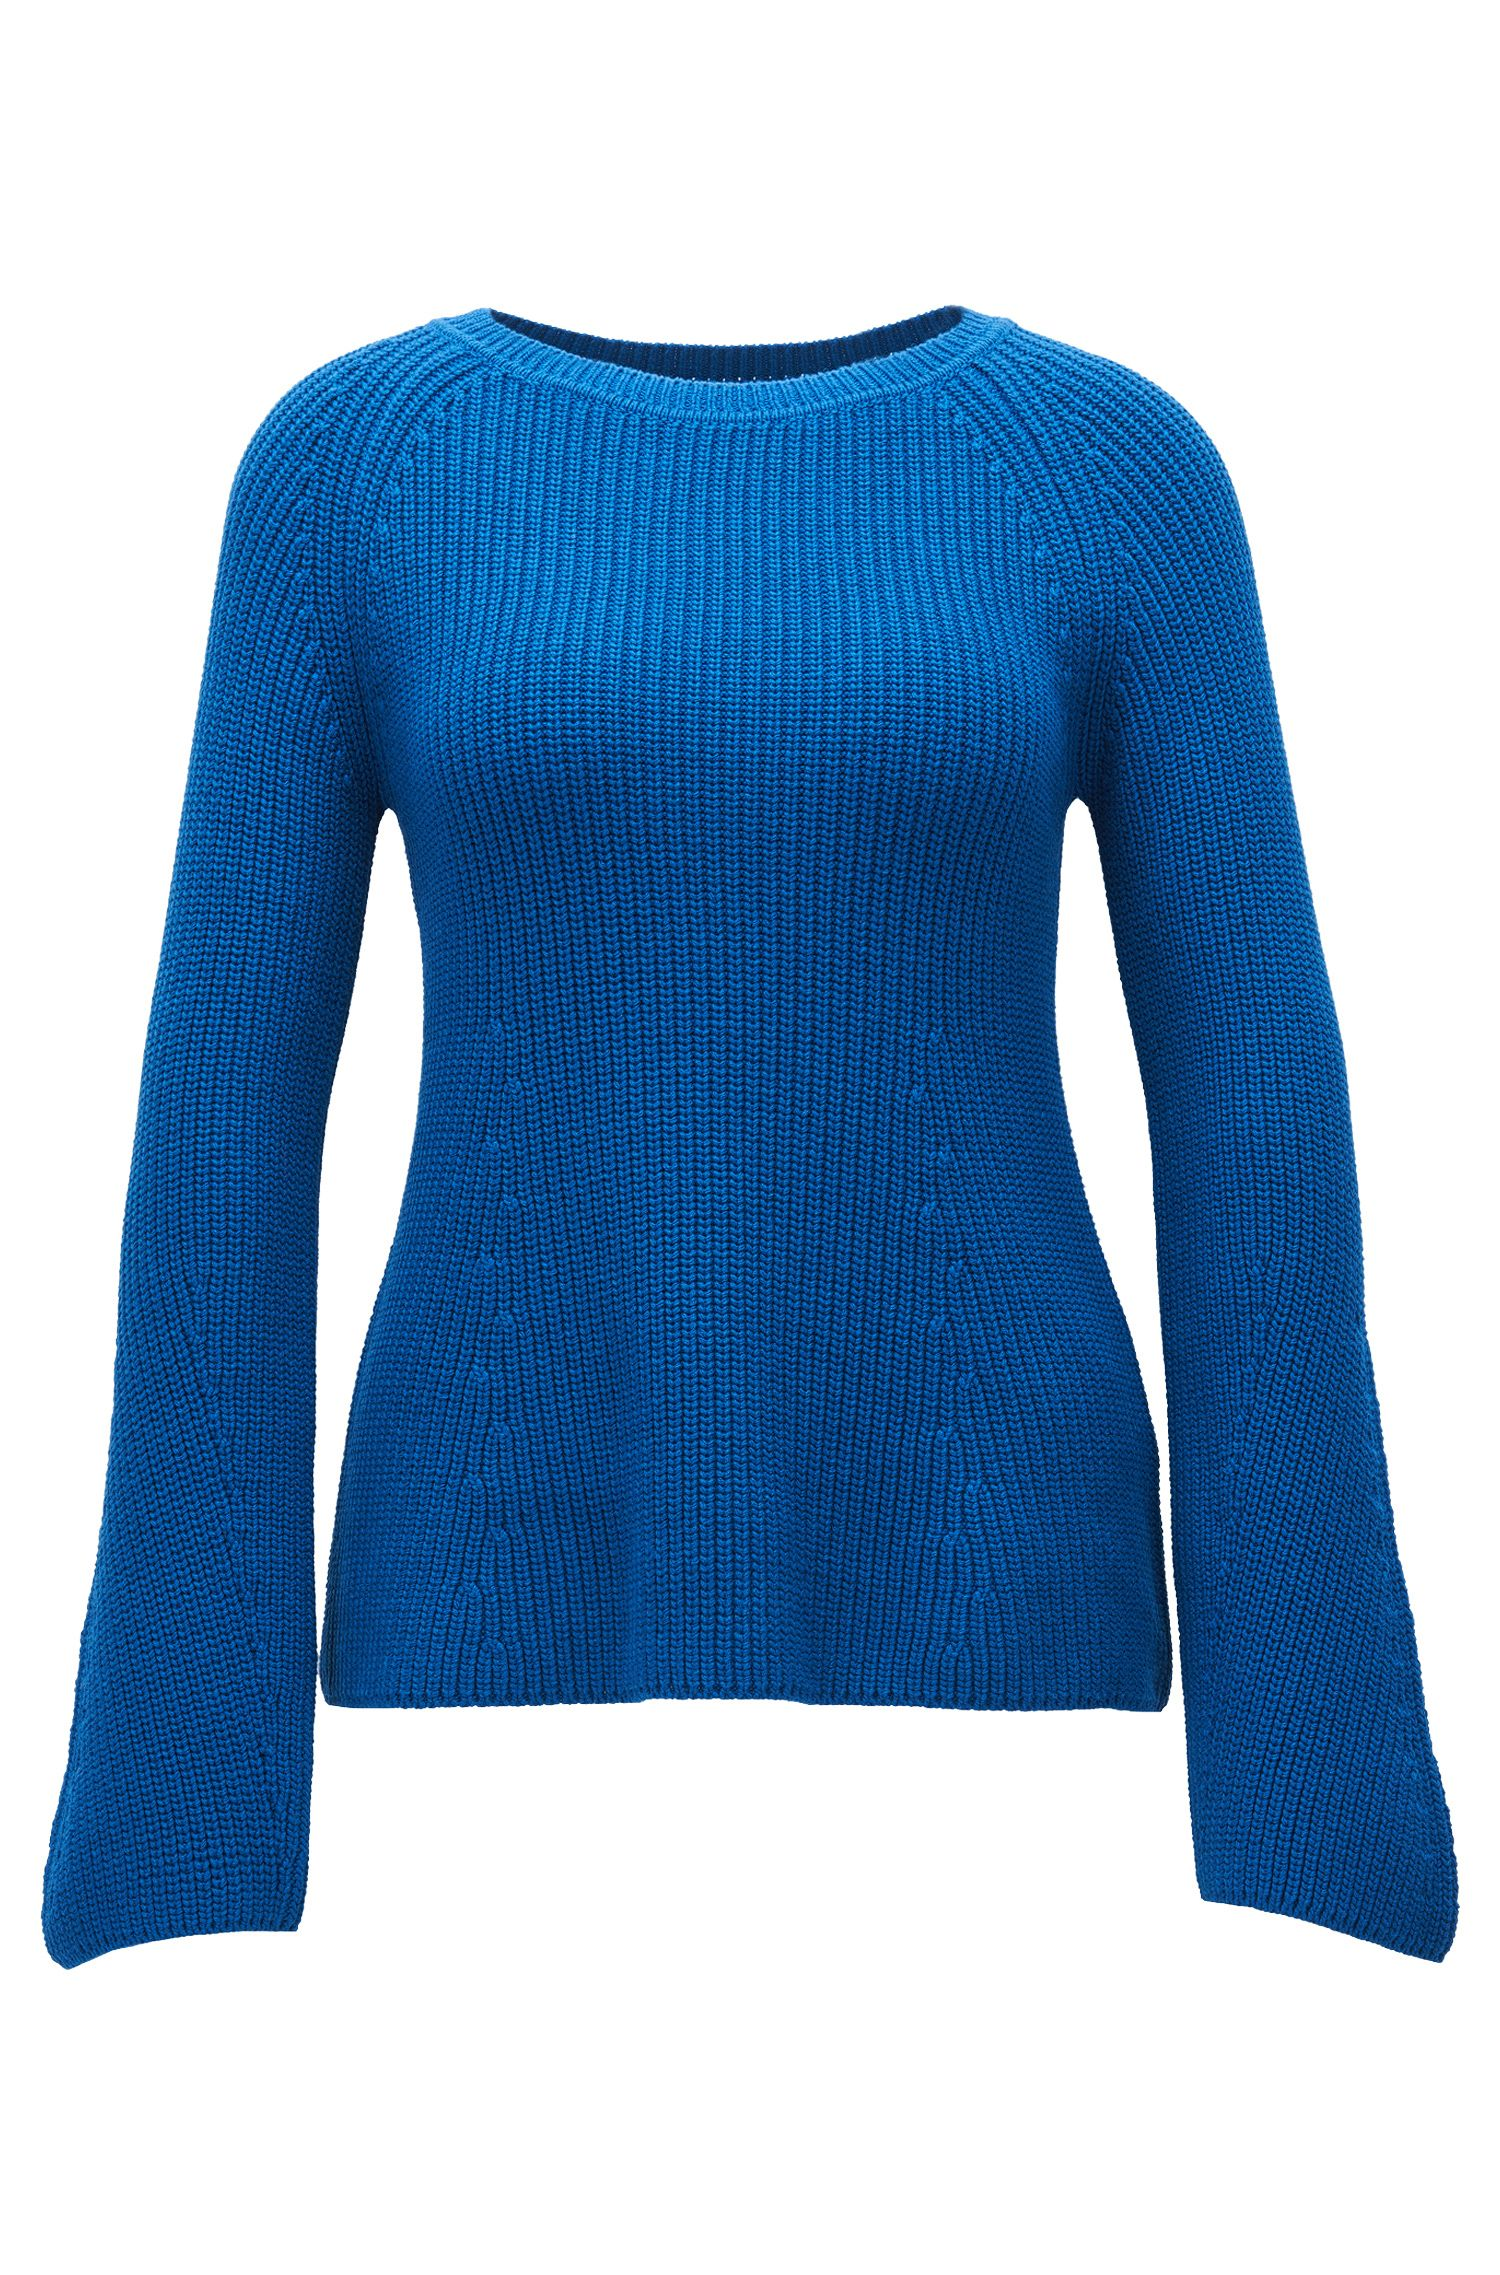 Cotton Blend Rib-Knit Sweater | Foya